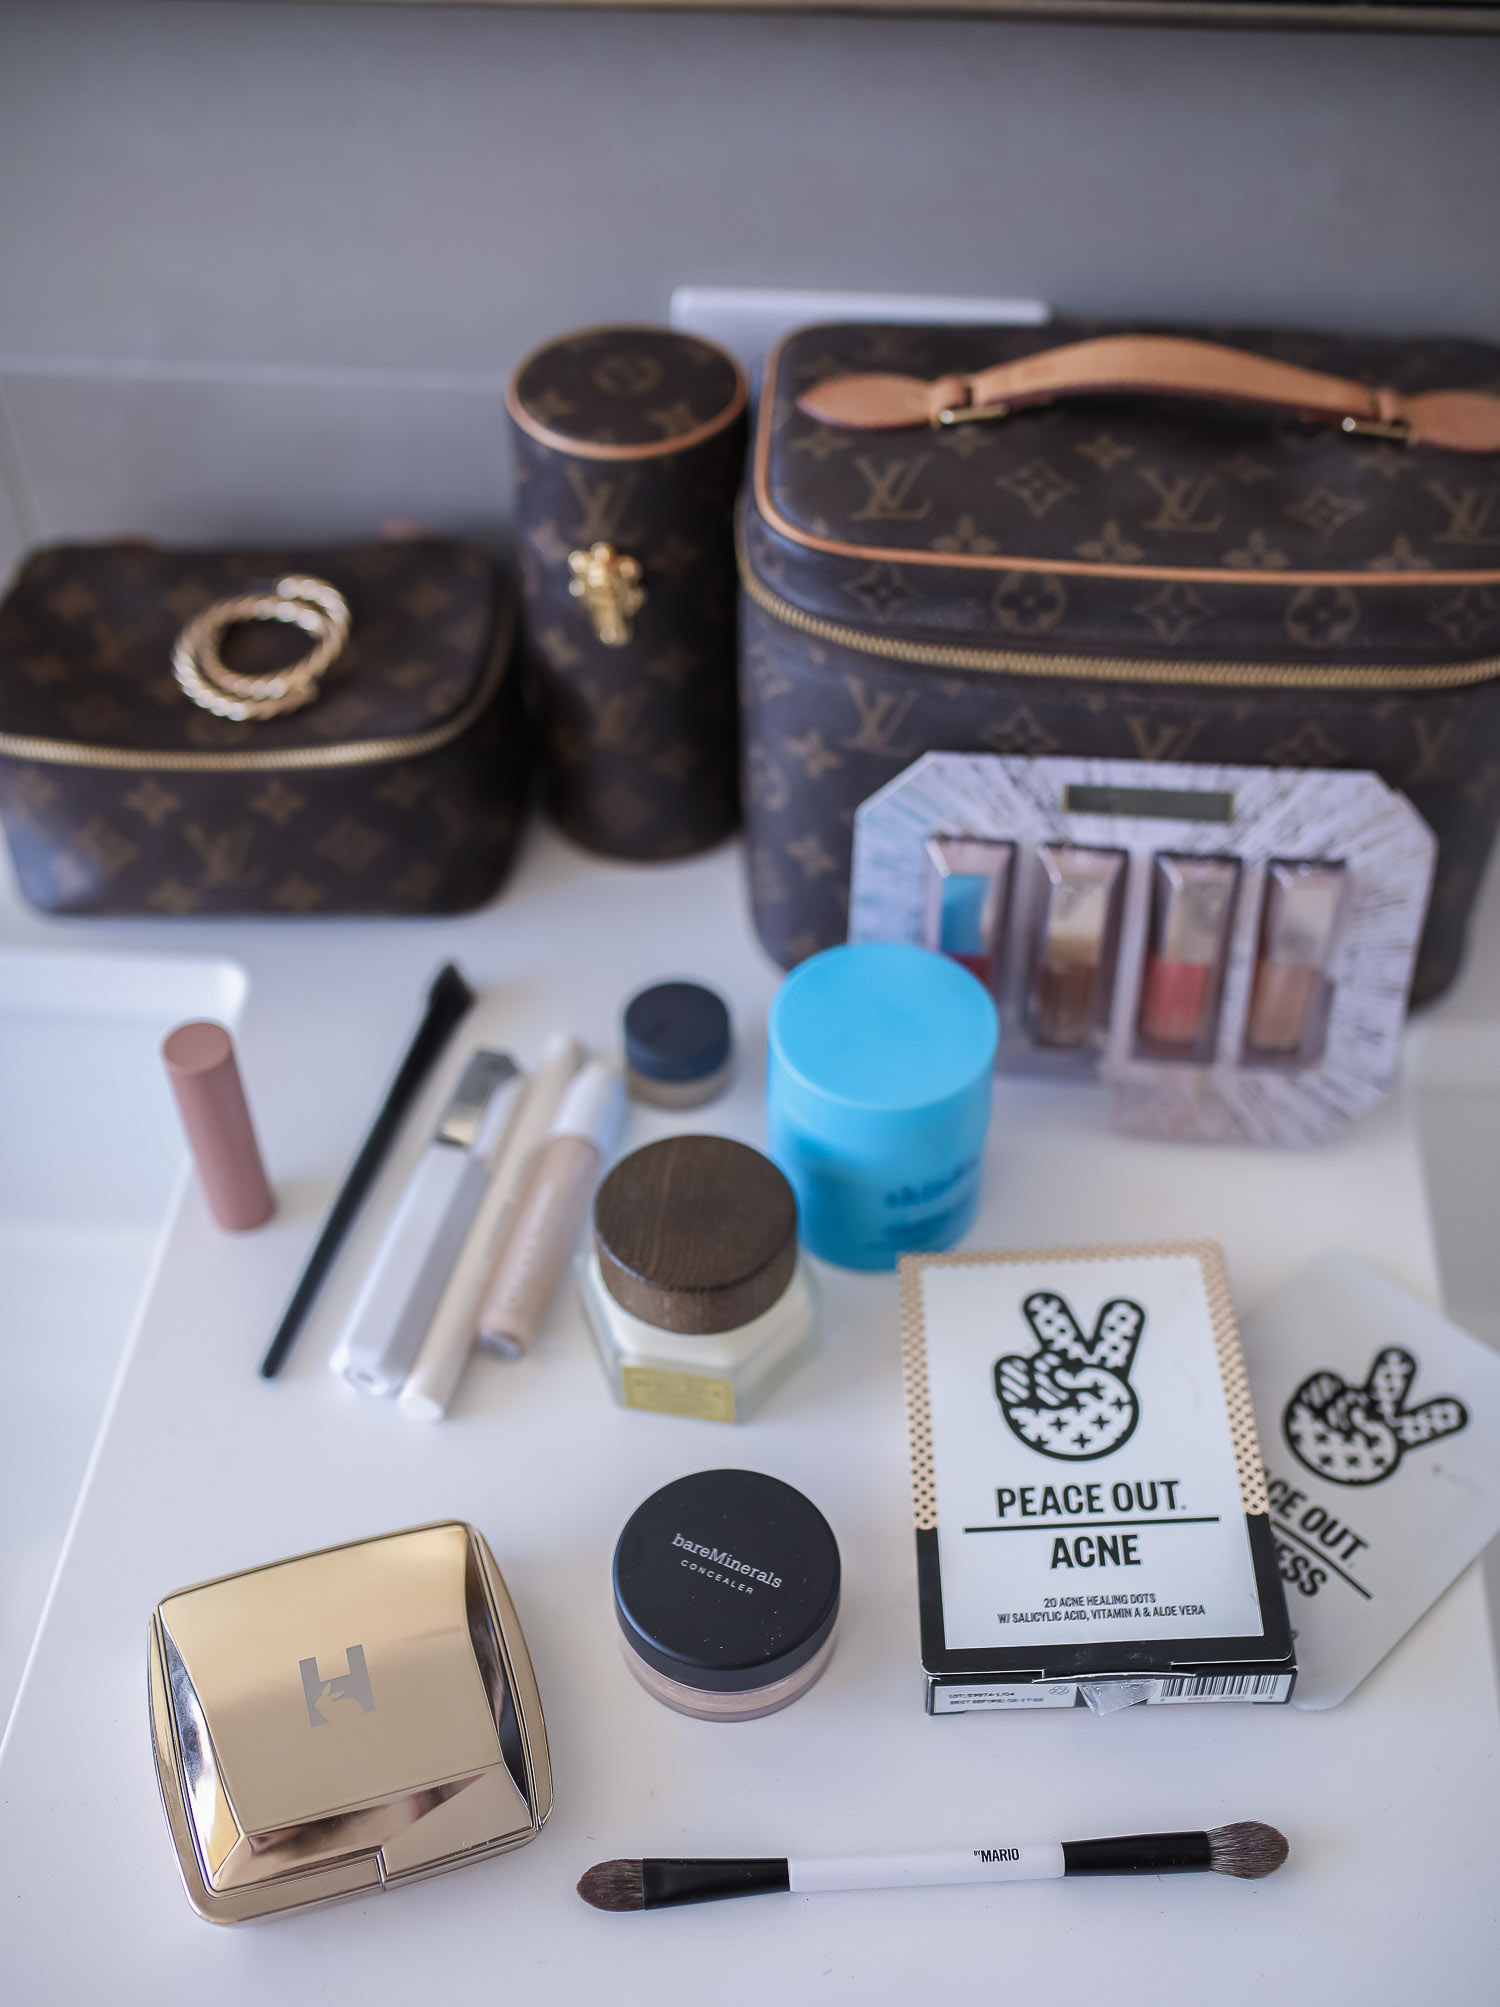 Sephora savings event fall 2020, sephora VIB sale event, beauty blogger sephora favorites fall 2020, emily ann gemma-10 |Sephora Beauty Insider Sale by popular US beauty blog, The Sweetest Thing: image of Louis Vuitton makeup and jewelry cases next to Sephroa beauty products.